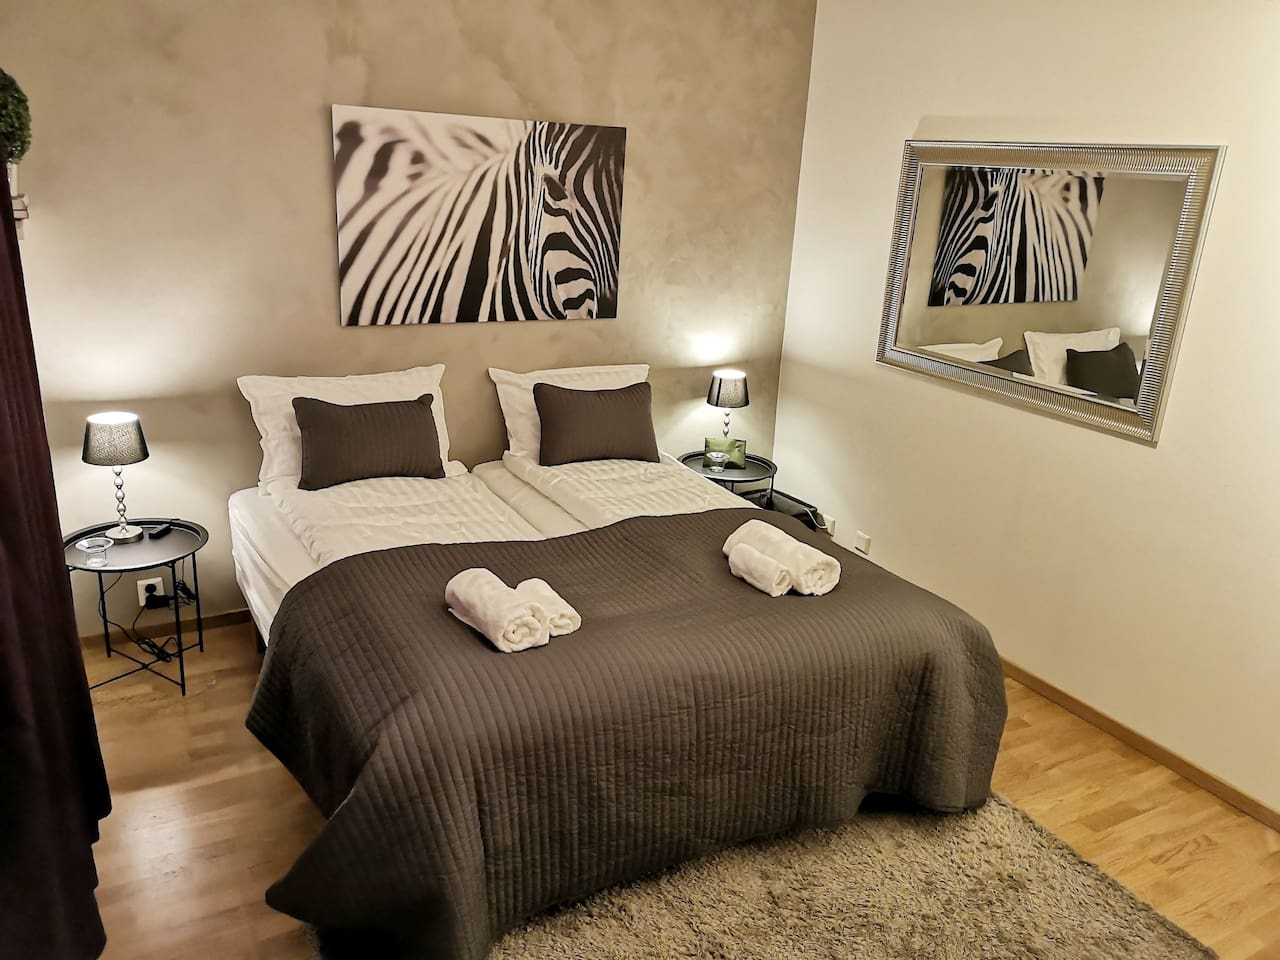 Soft pillows, linen, towels, provided for every new stay. The beds are medium hard and soft, pick and choose your side. Beds can be moved if you prefer more distance between roommates.